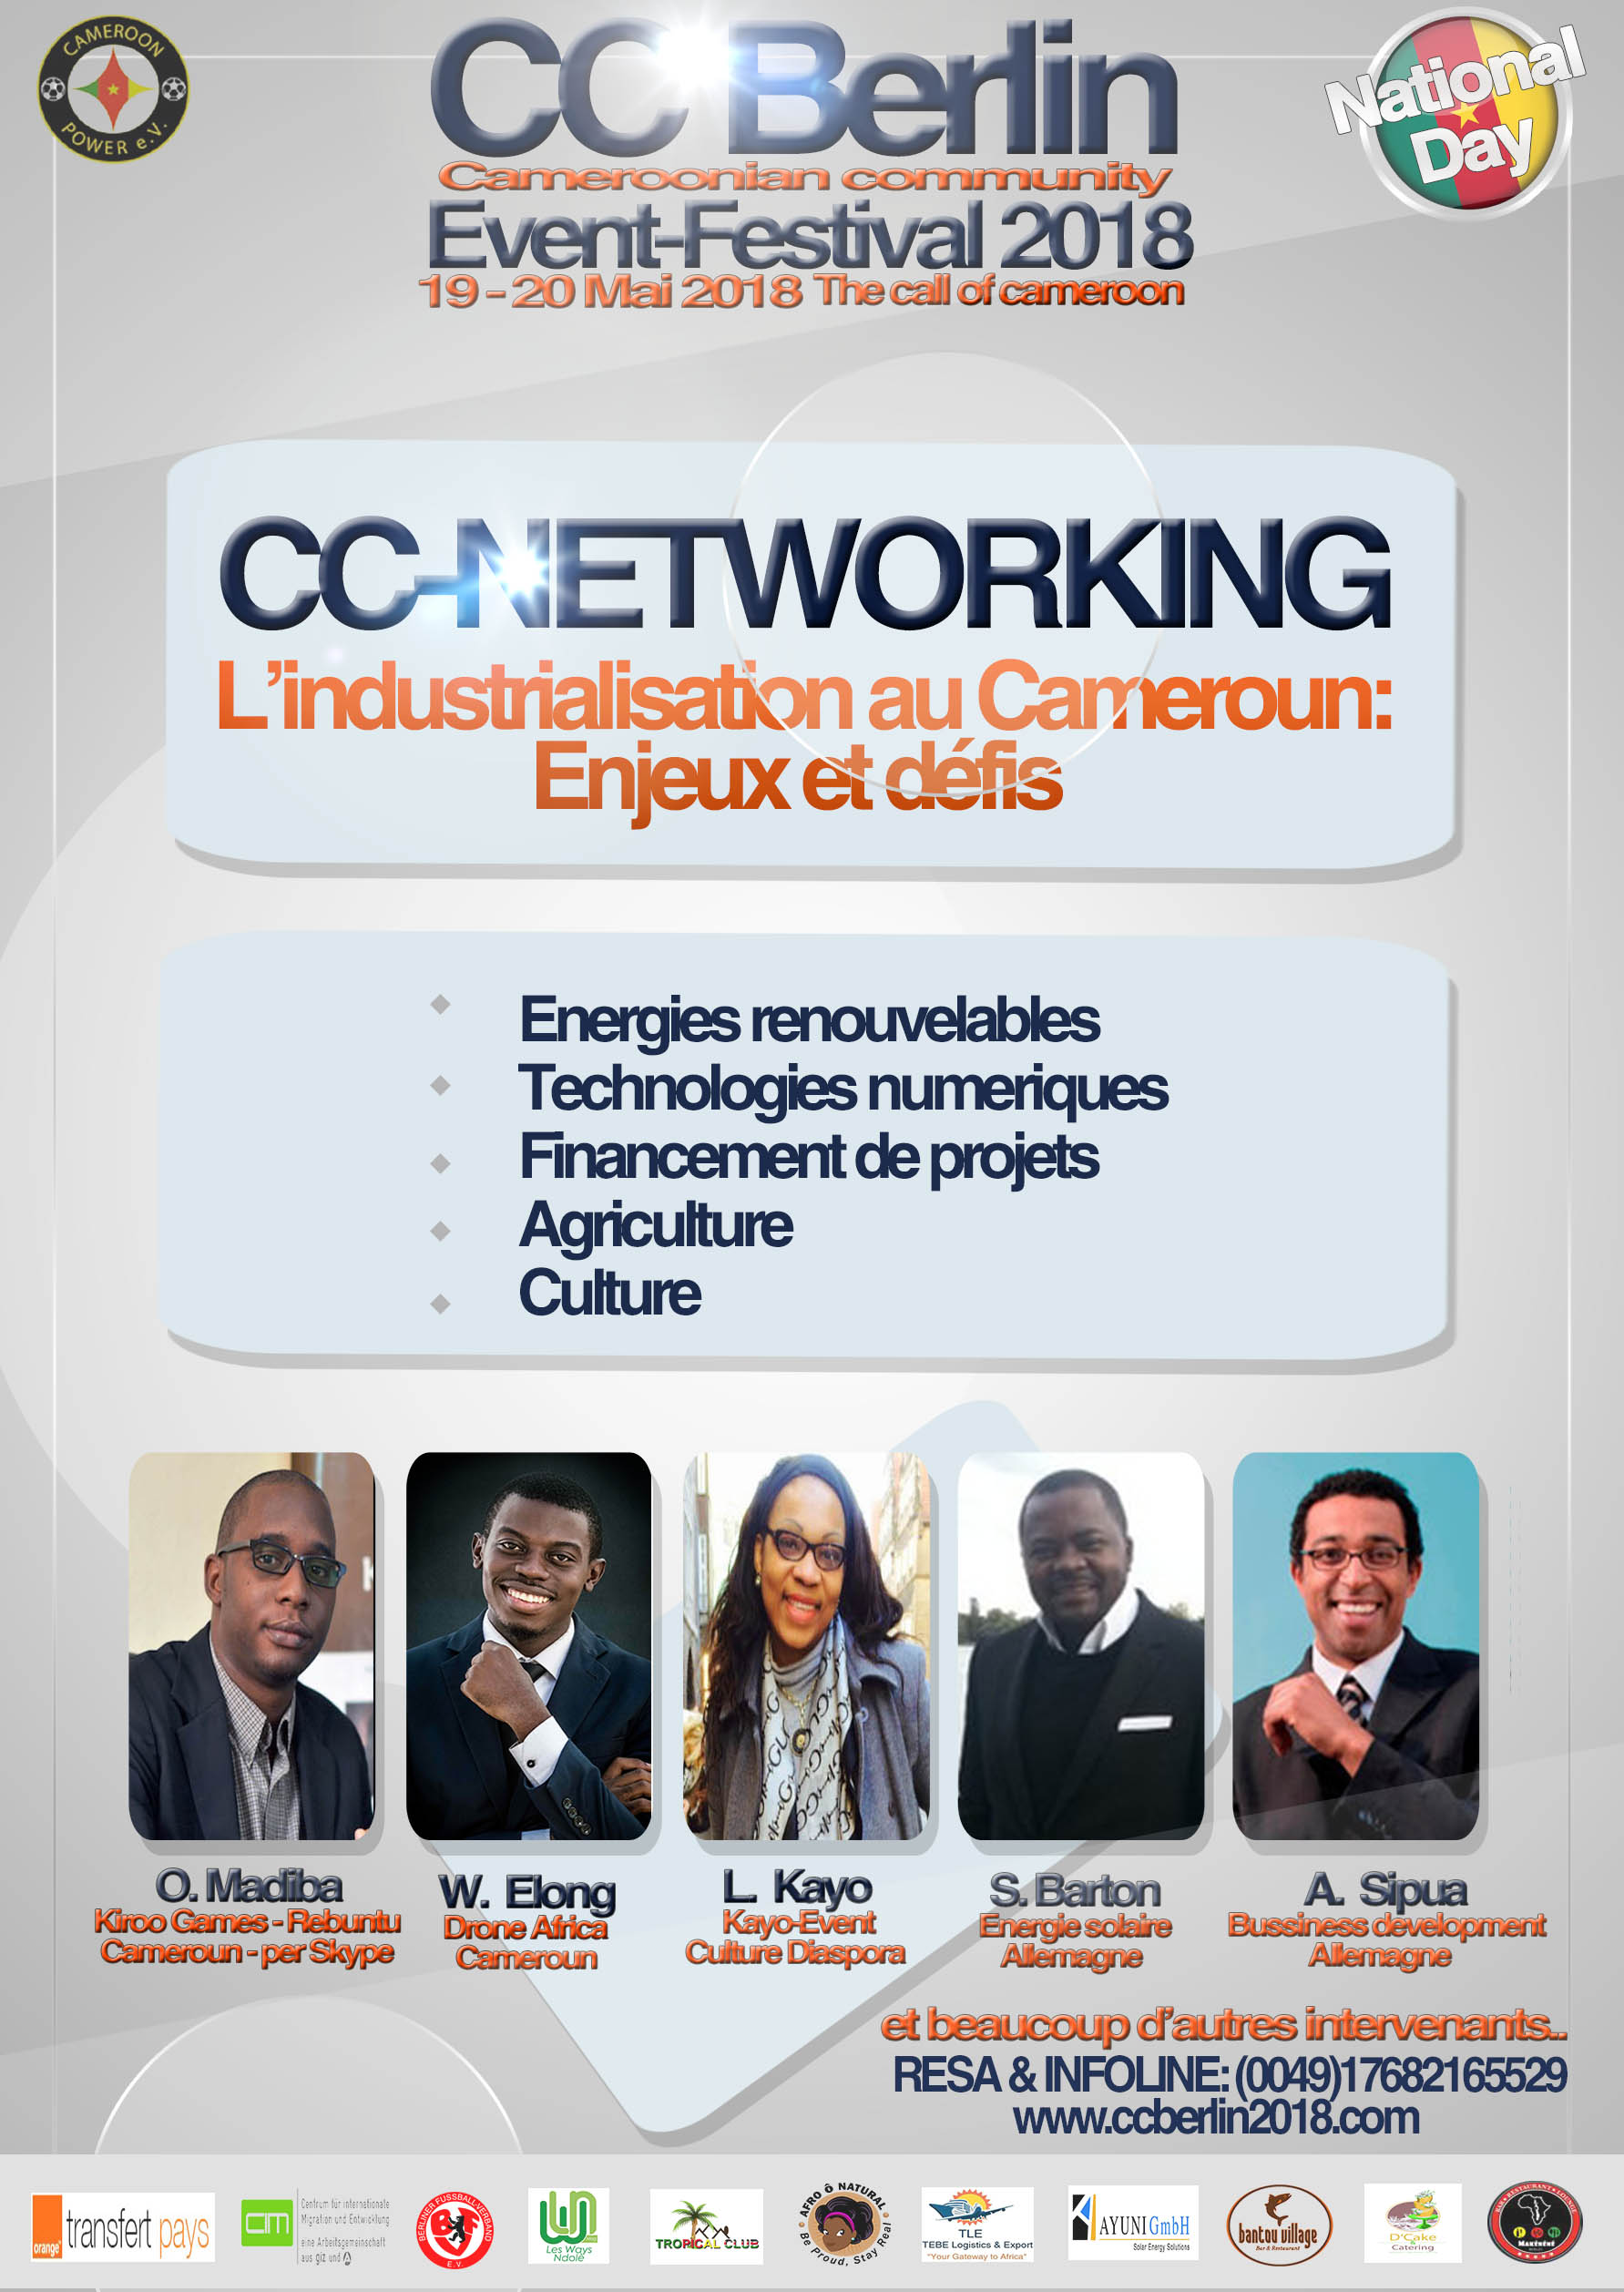 CC NEtworking: Industrialization in Cameroon